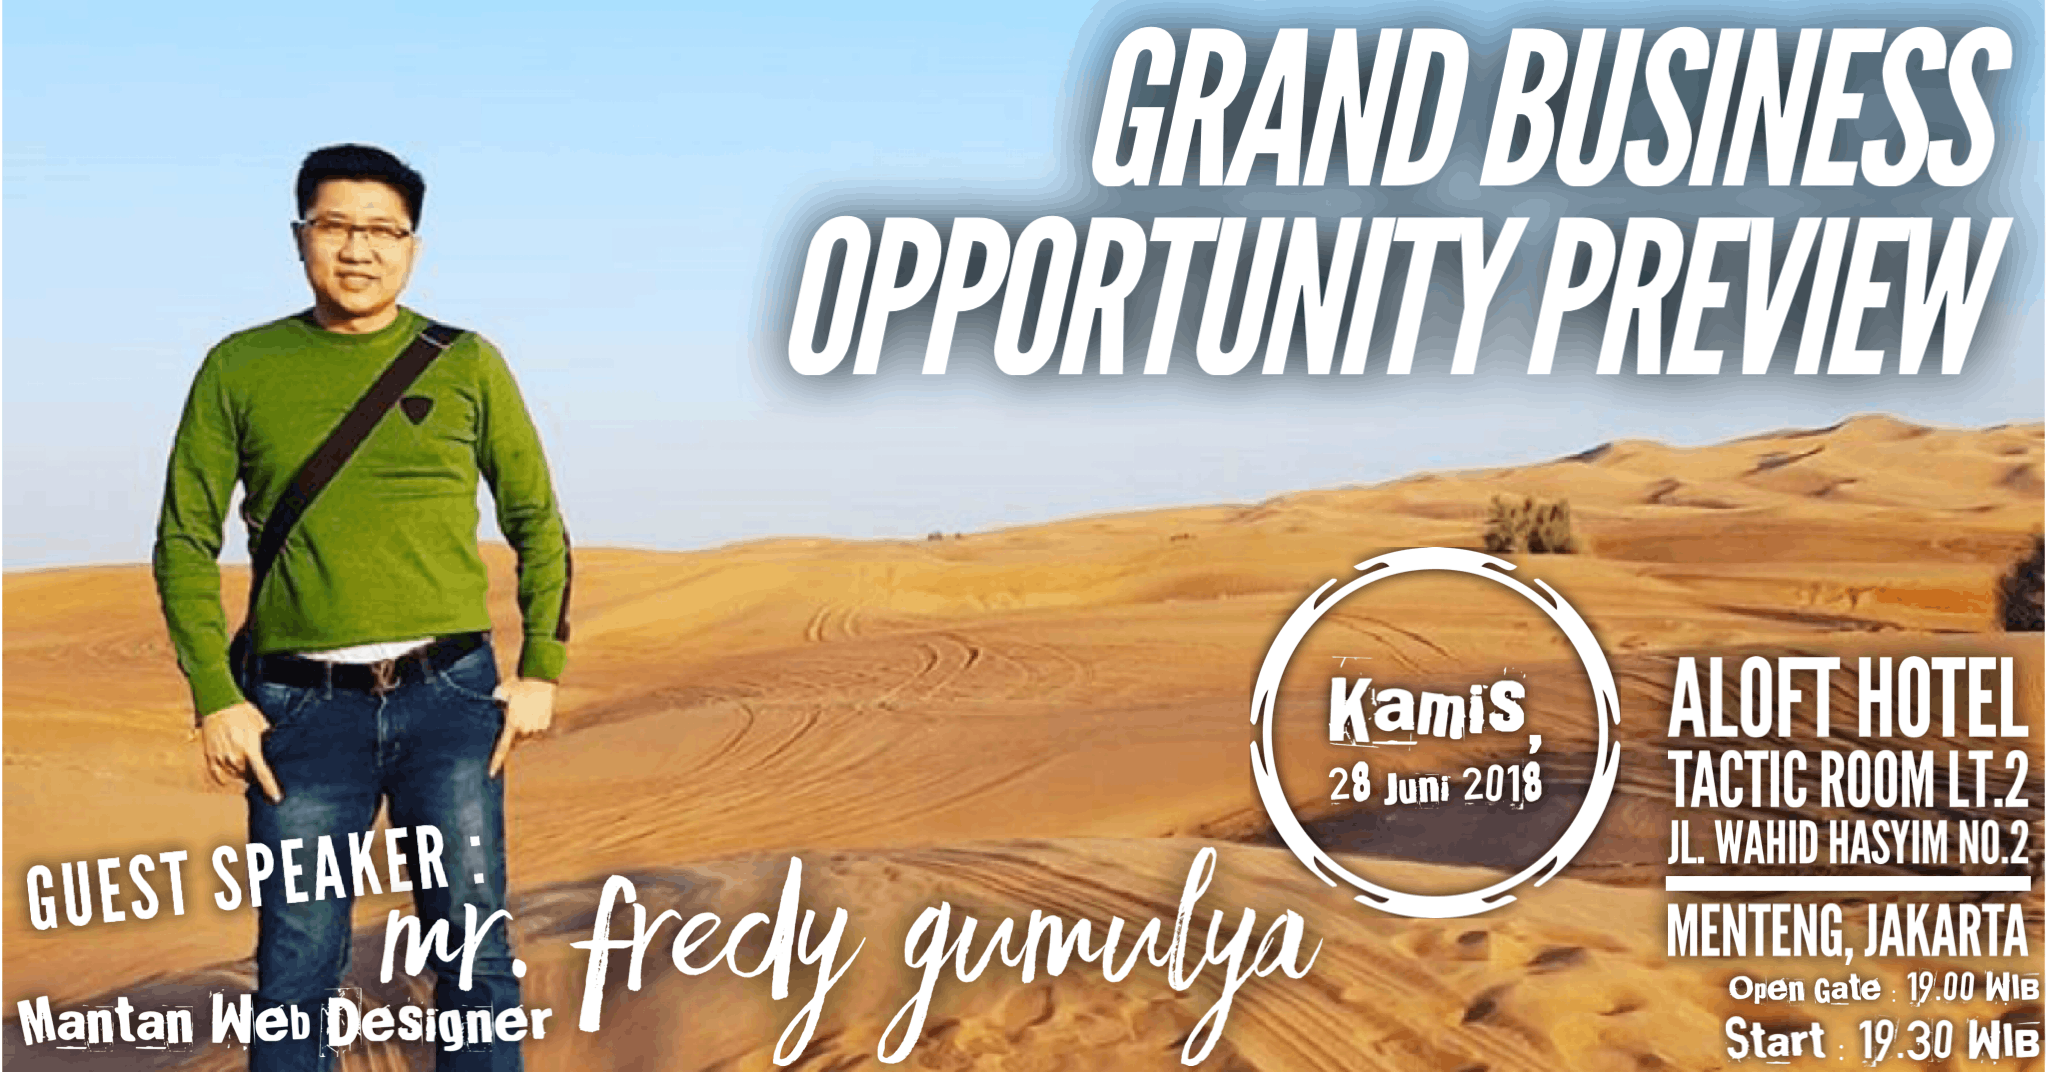 Grand Business Opportunity Preview